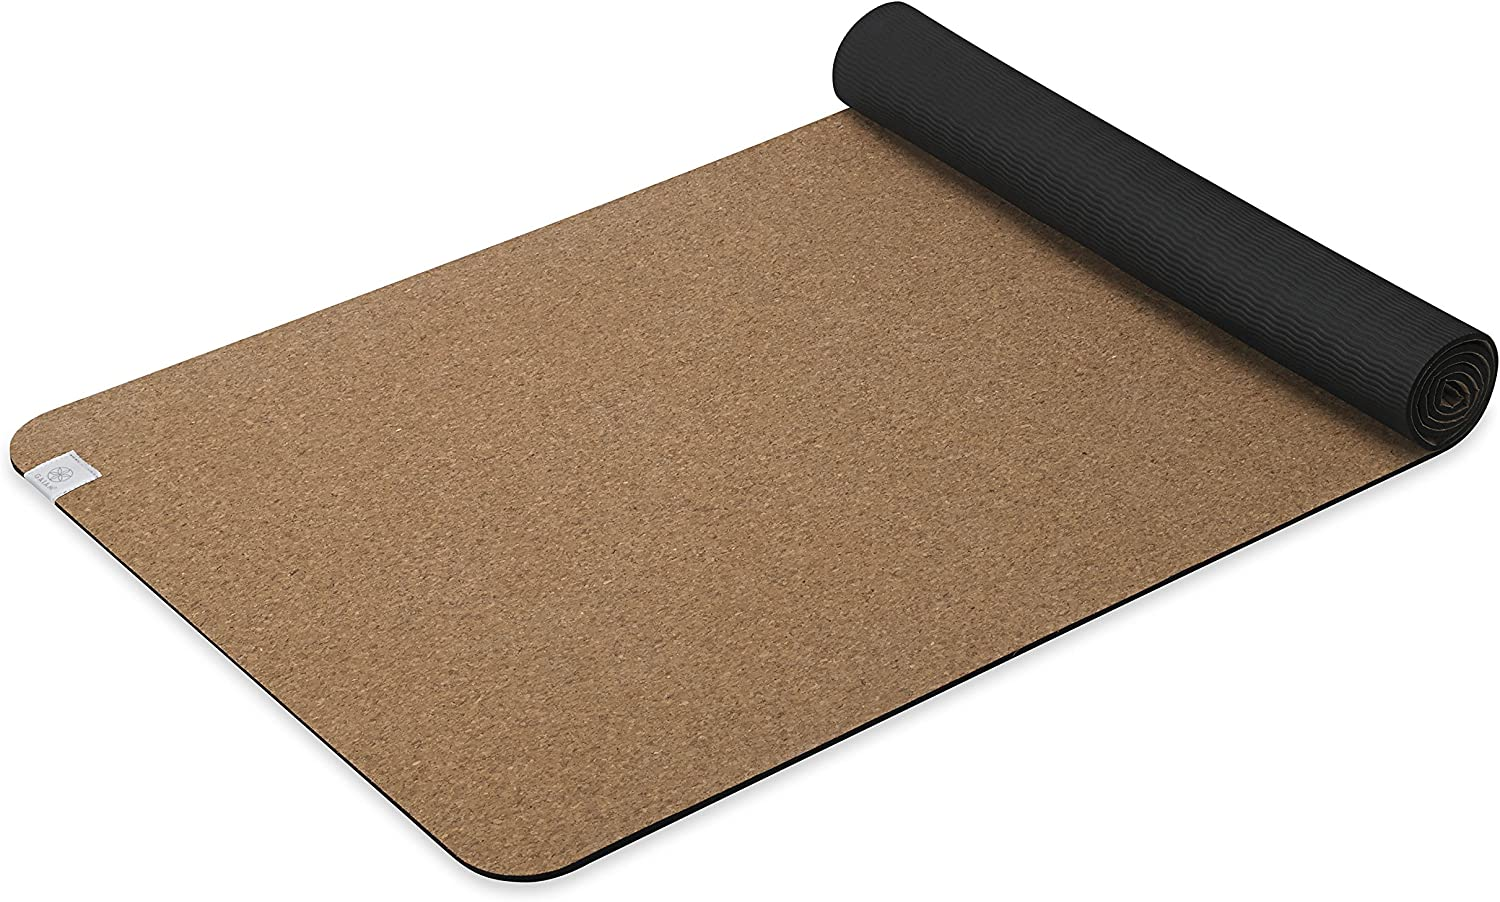 Gaiam Cork Yoga Mat | Natural Sustainable Cork Resists Germs and Odor | Non-Toxic TPE Rubber Backing | Great for Hot Yoga, Pilates (68-Inch x 24-Inch ...